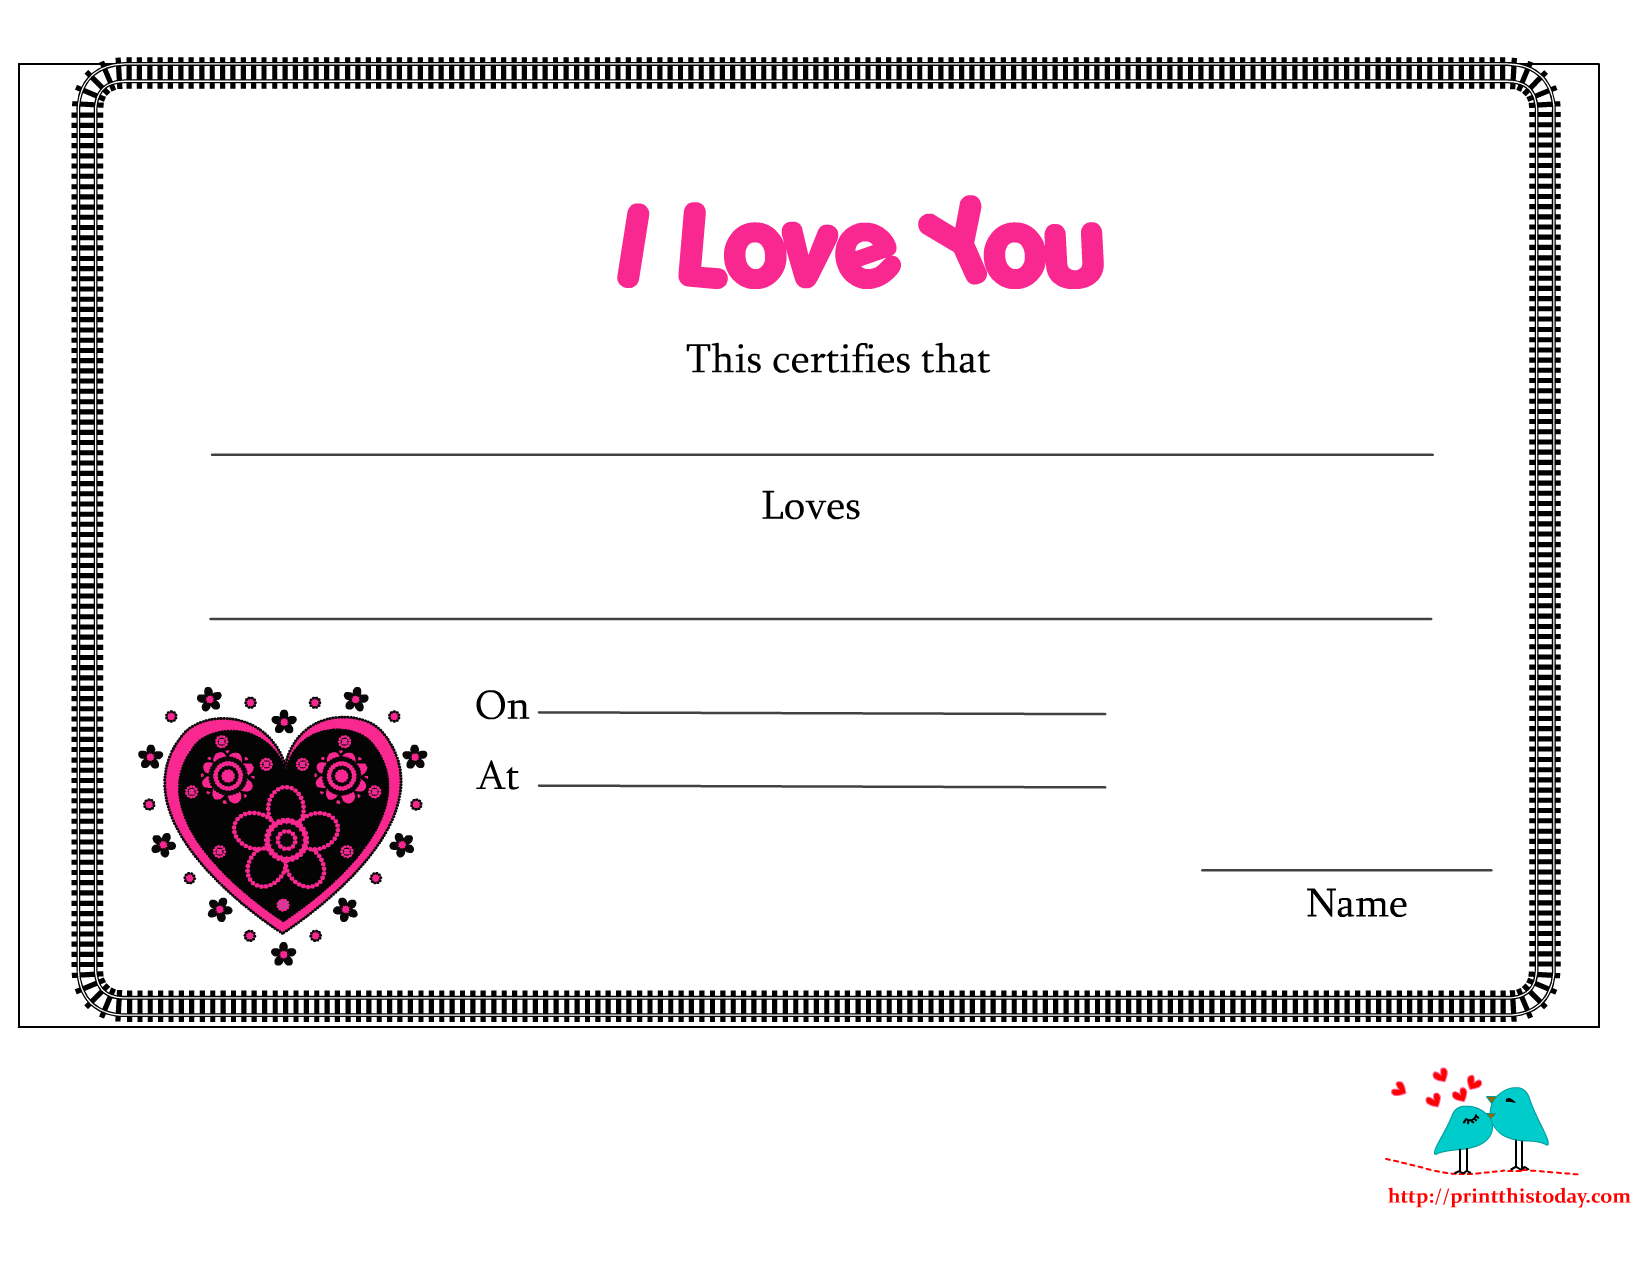 love certificate 221 Top Result 70 Fresh Free Certificates to Print Pic 2018 Ldkt